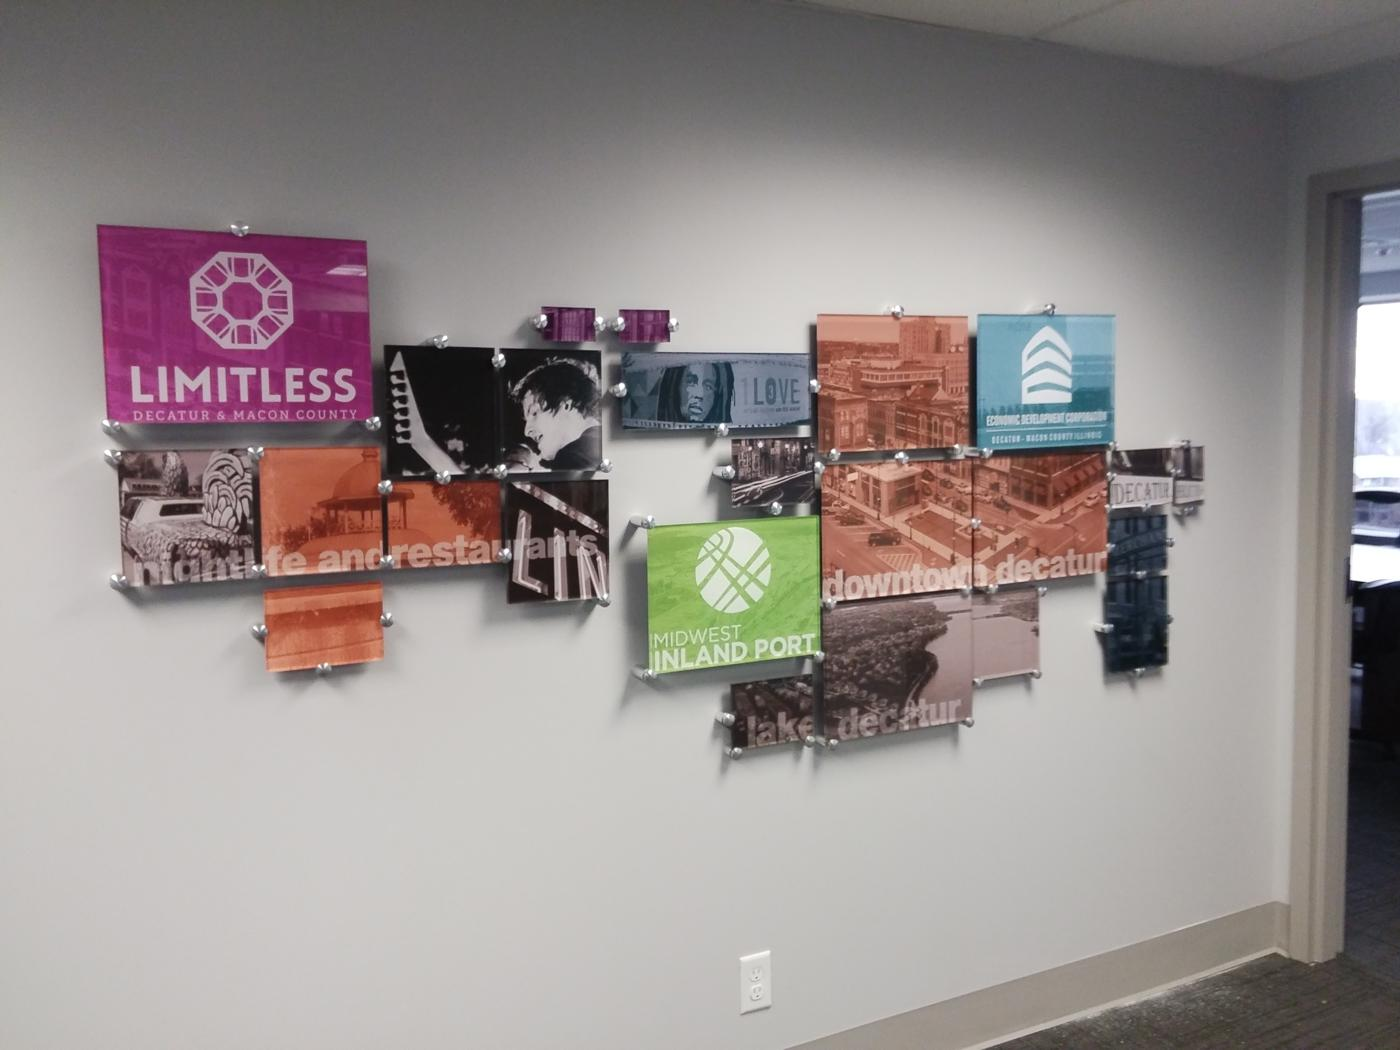 Wall Decor for Limitless - Decatur, IL